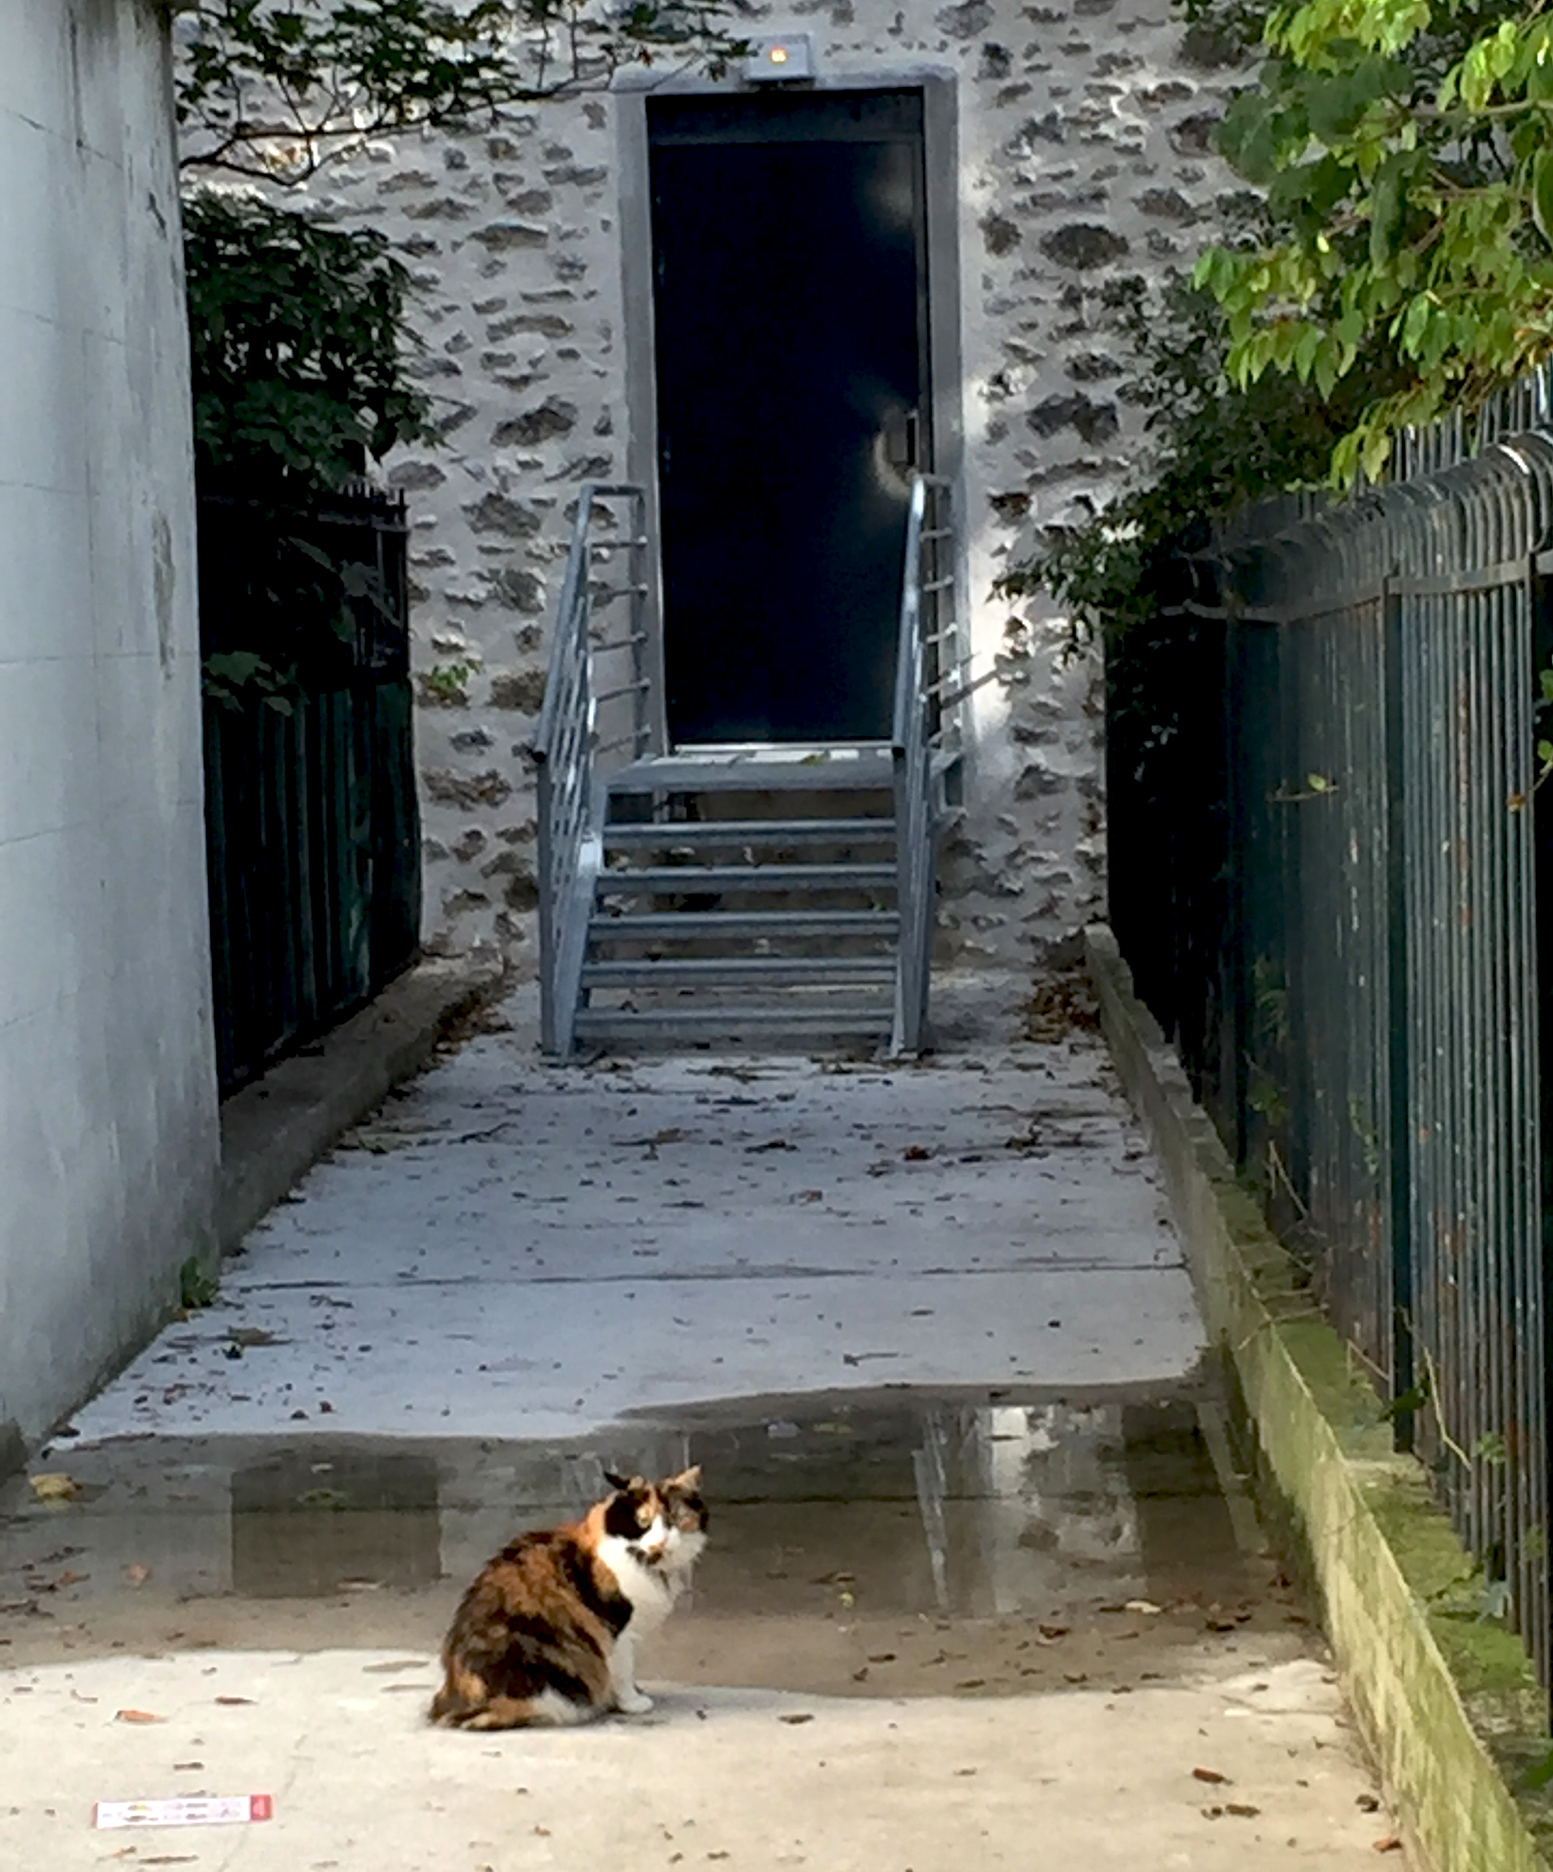 Rue du Mont-Cenis, in the 18th arrondissement. Who did you expect? Le Chat Noir?